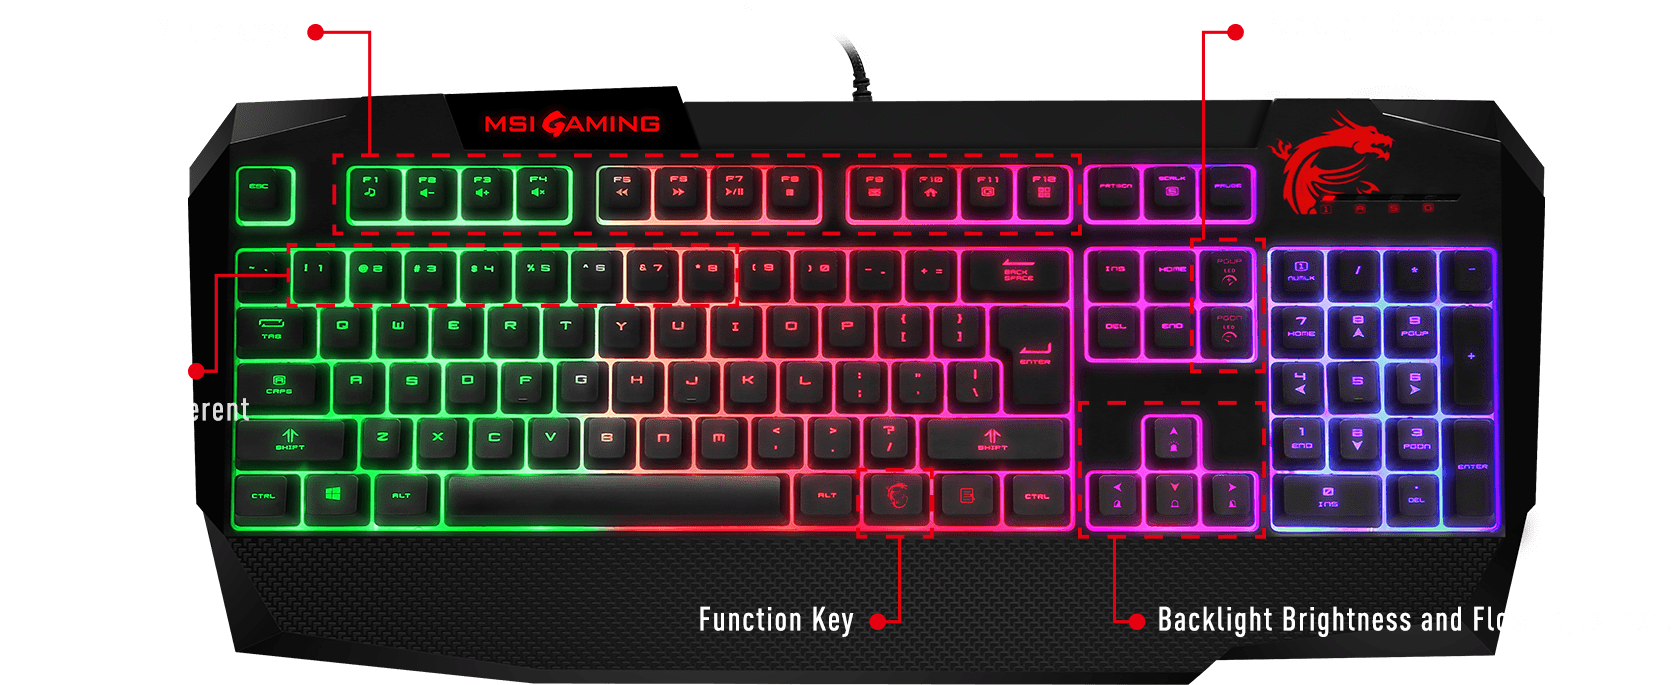 bb89a885b44 Gk40 GAMING keyboard FEATURES overview